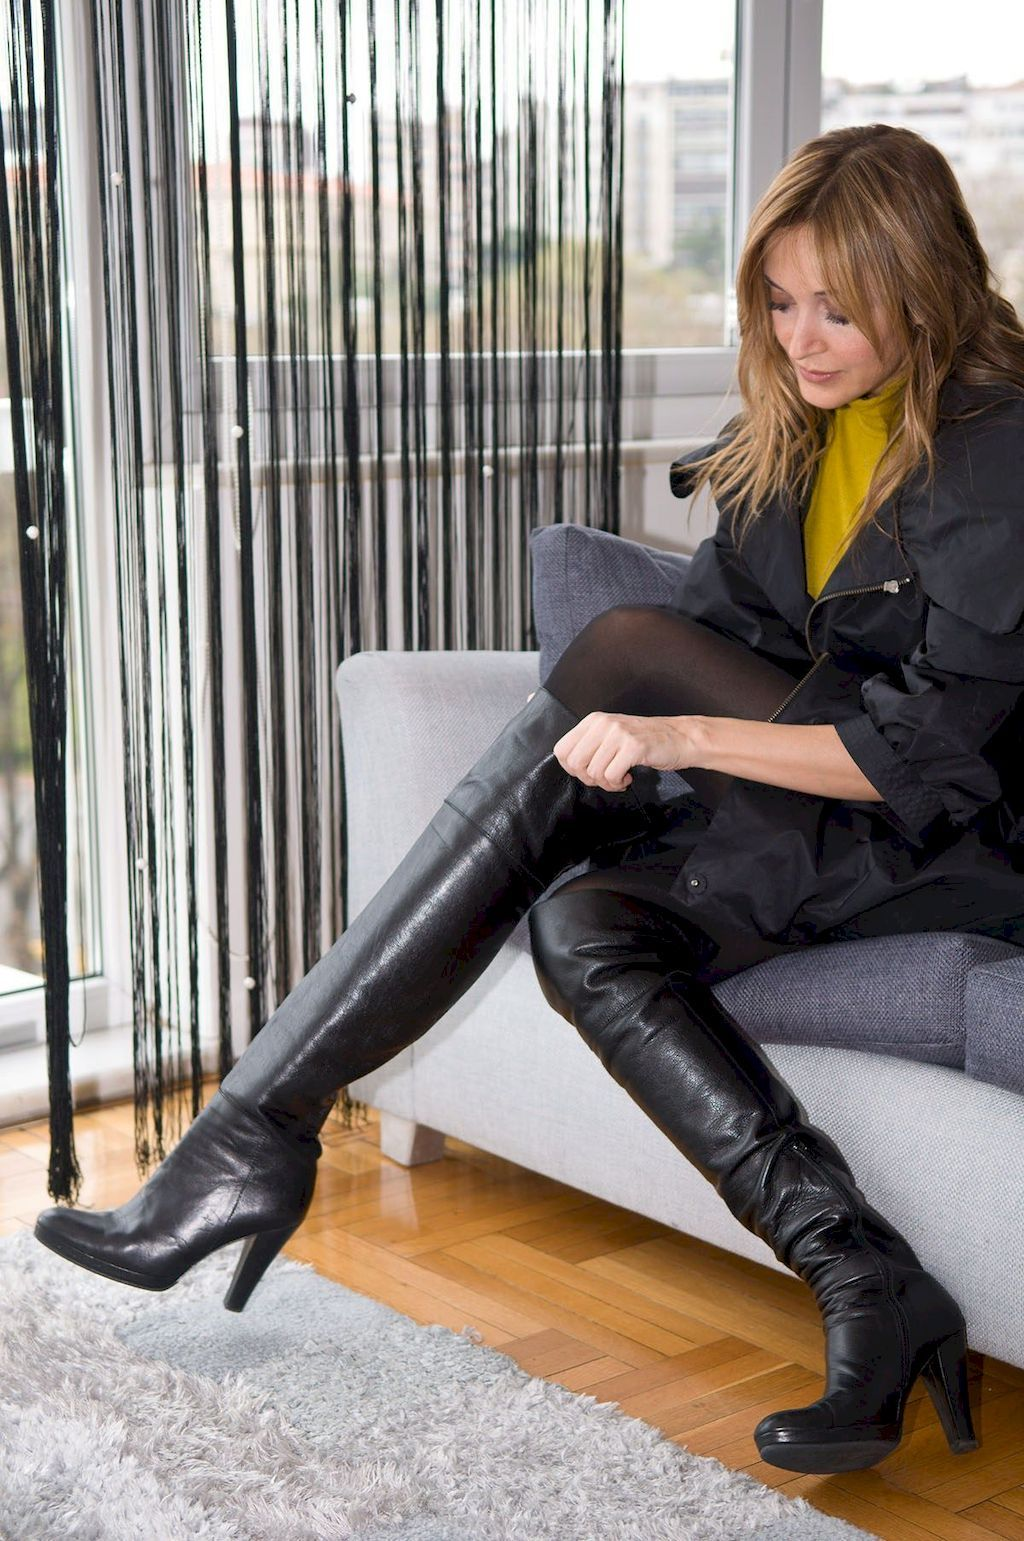 Adorable 82 Best Boots To Wear With Skirts Https Bellestilo Com 3607 82 Best Boots To Wear With S High Knee Boots Outfit High Boots Outfit High Leather Boots